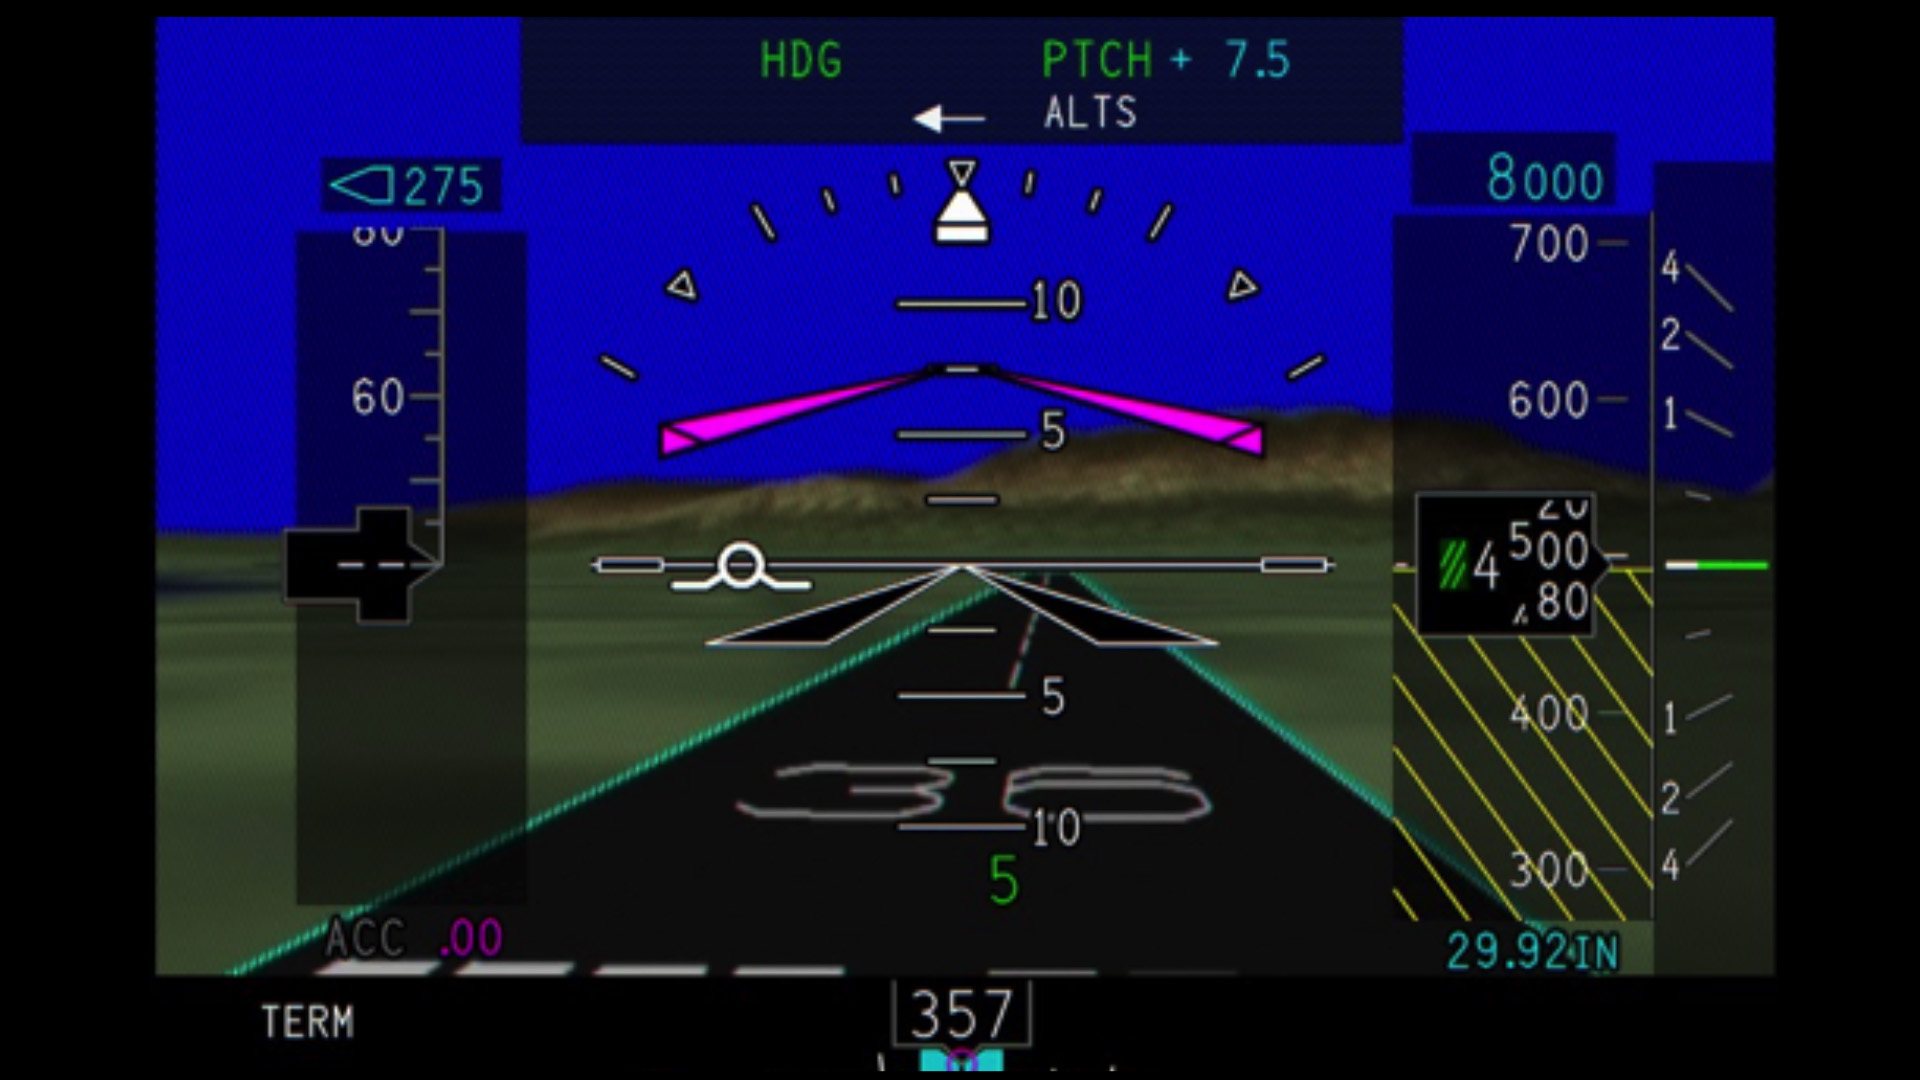 ... navigation situational awareness while using powerful, integrated  wiring integrated avionics documents fms guide At our innovative solutions  ...